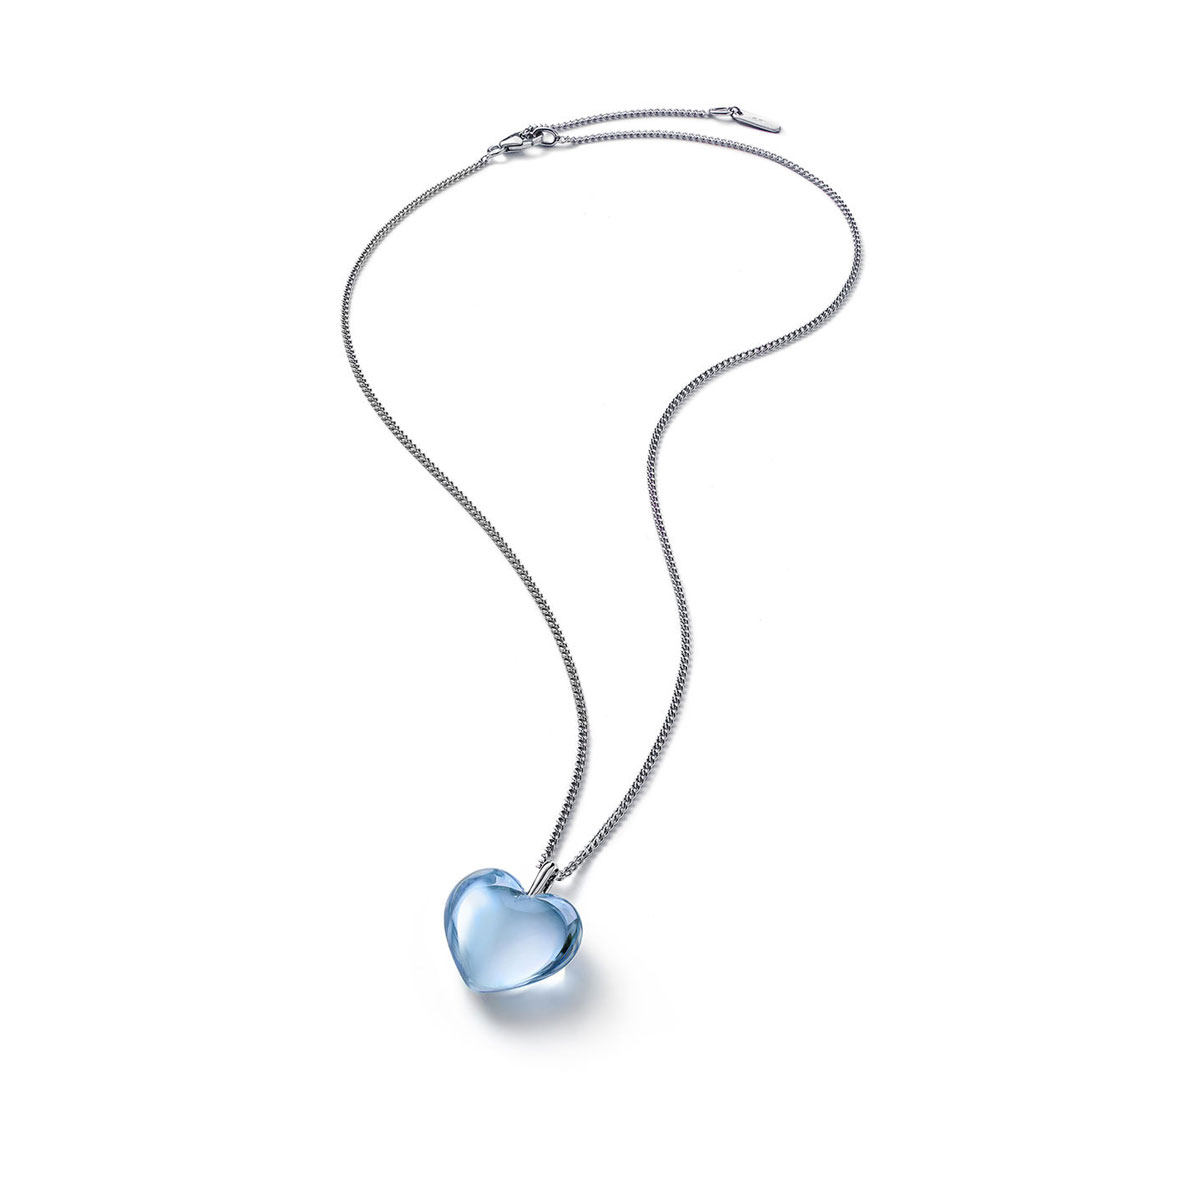 Baccarat Crystal Romance Pendant Necklace Small Silver Light Blue Mirror